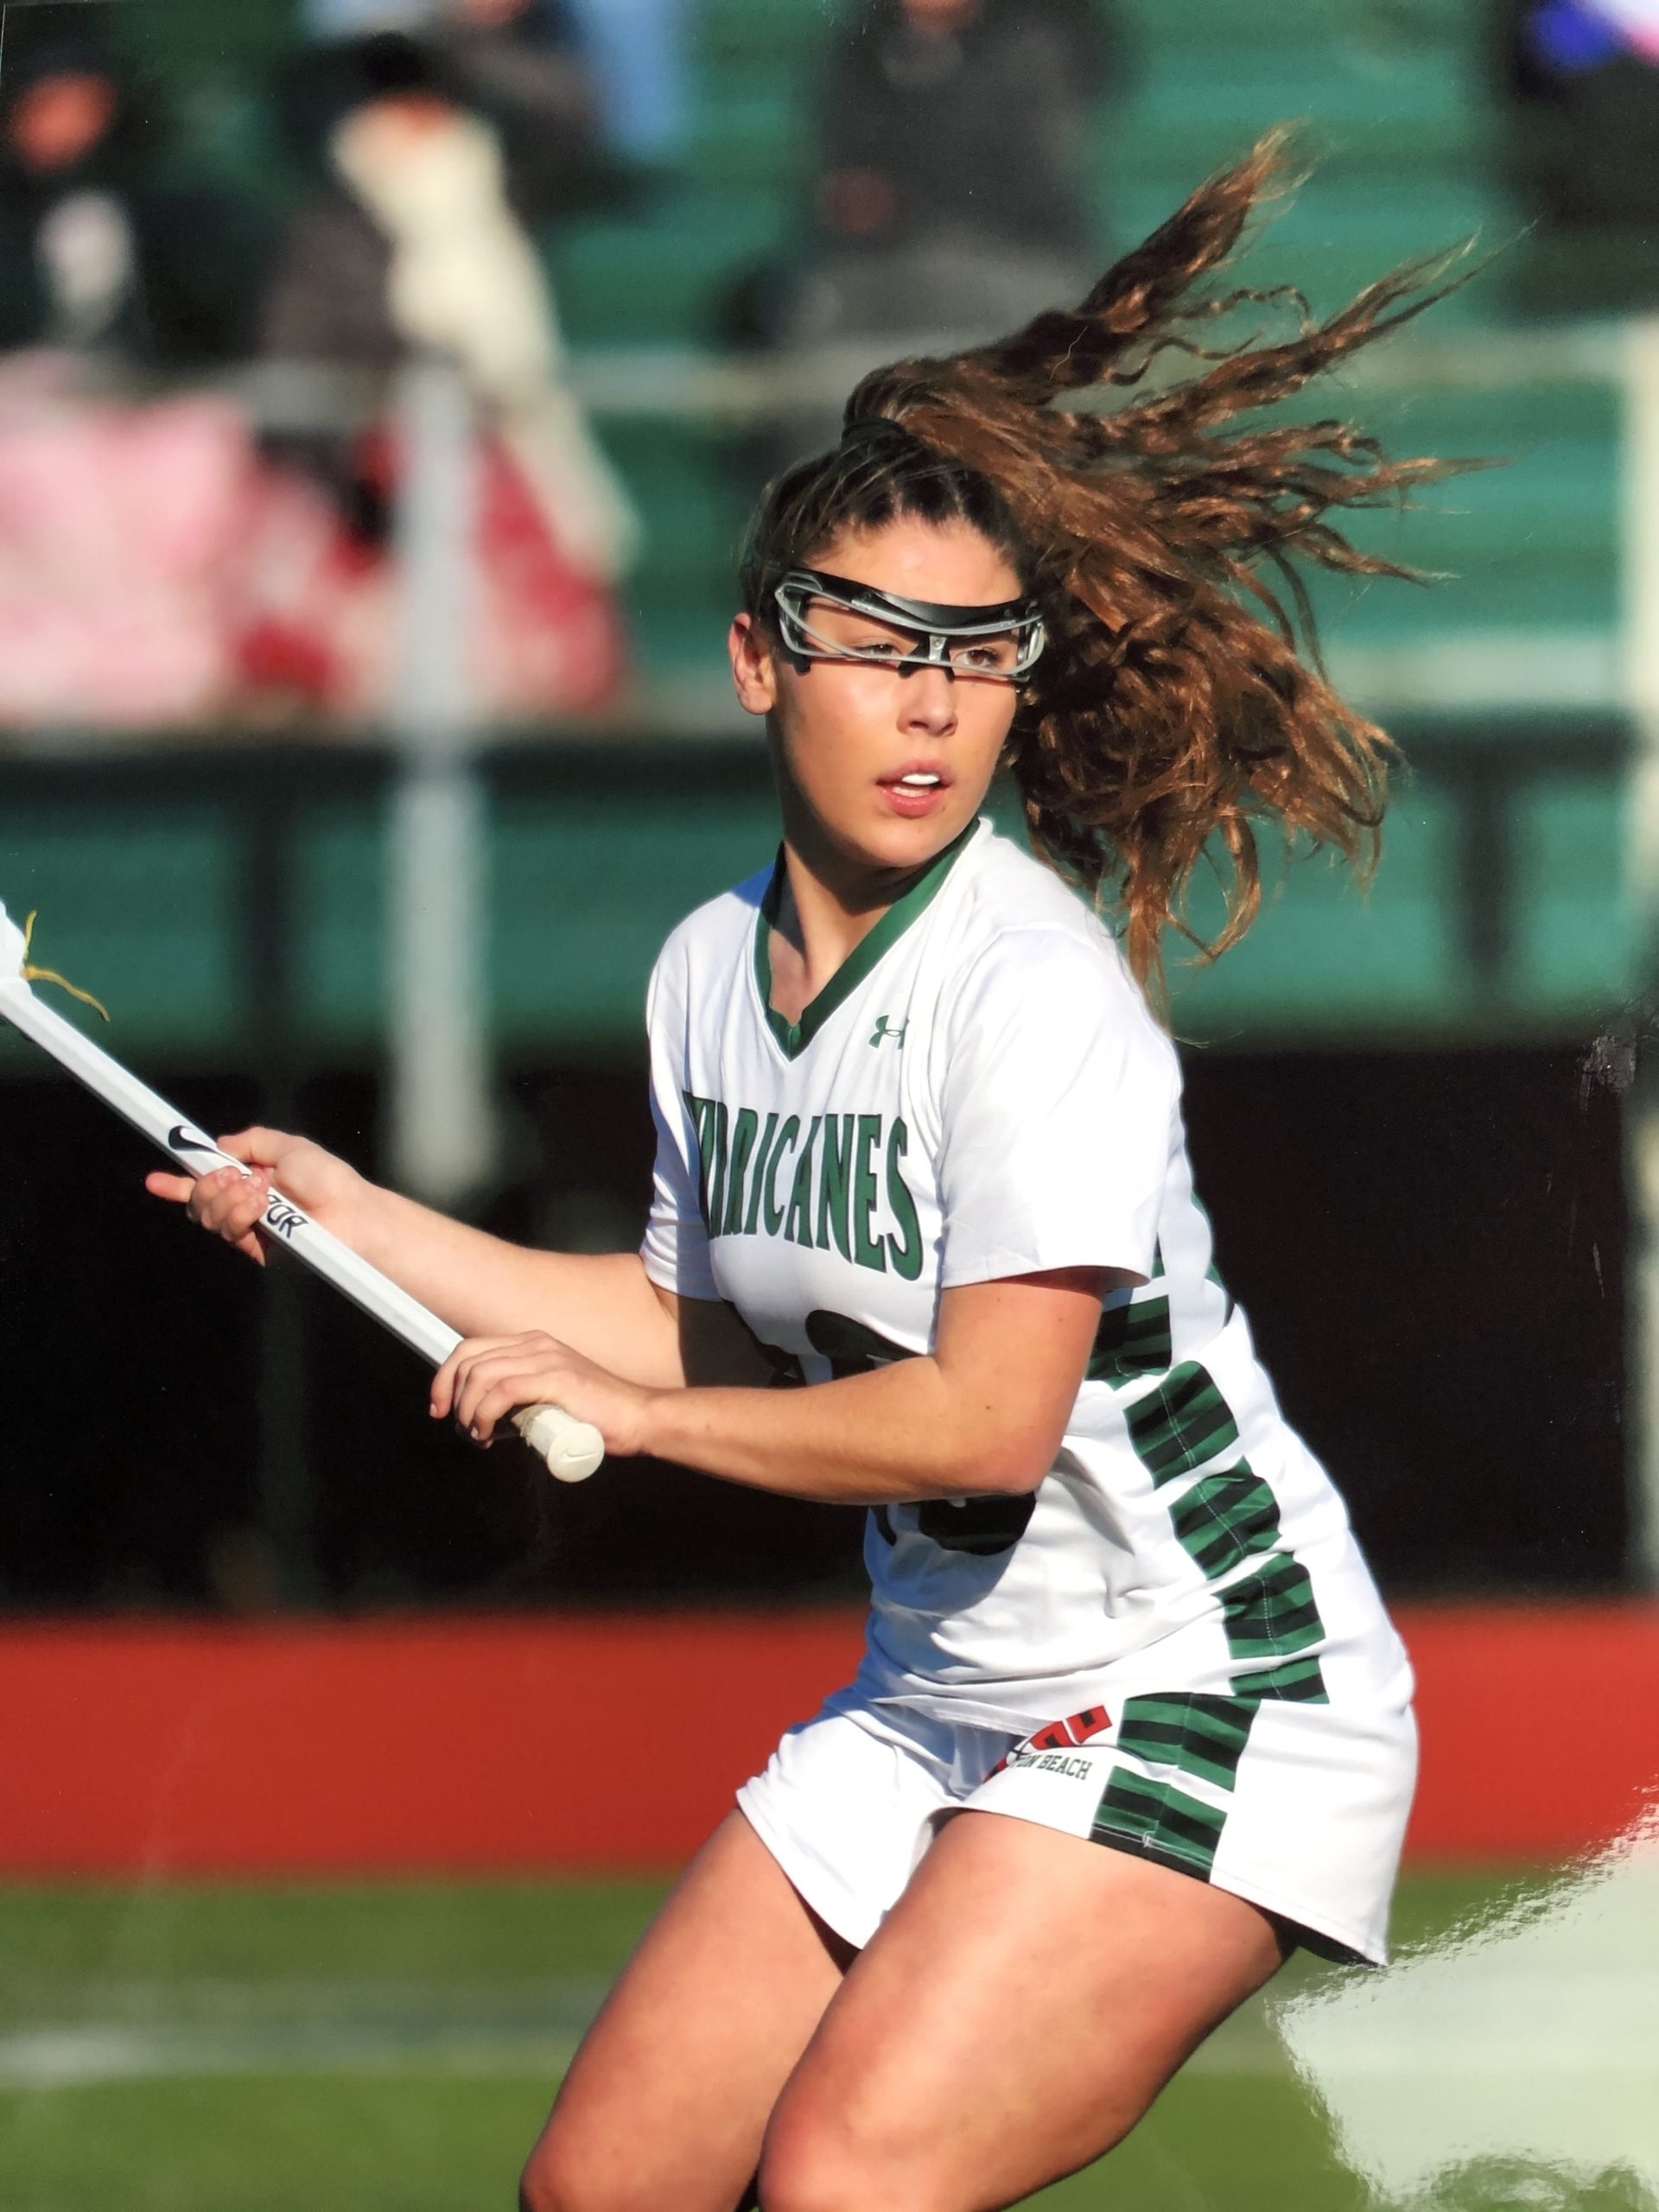 Maureen Duffy in action for Westhampton Beach High School's lacrosse team.